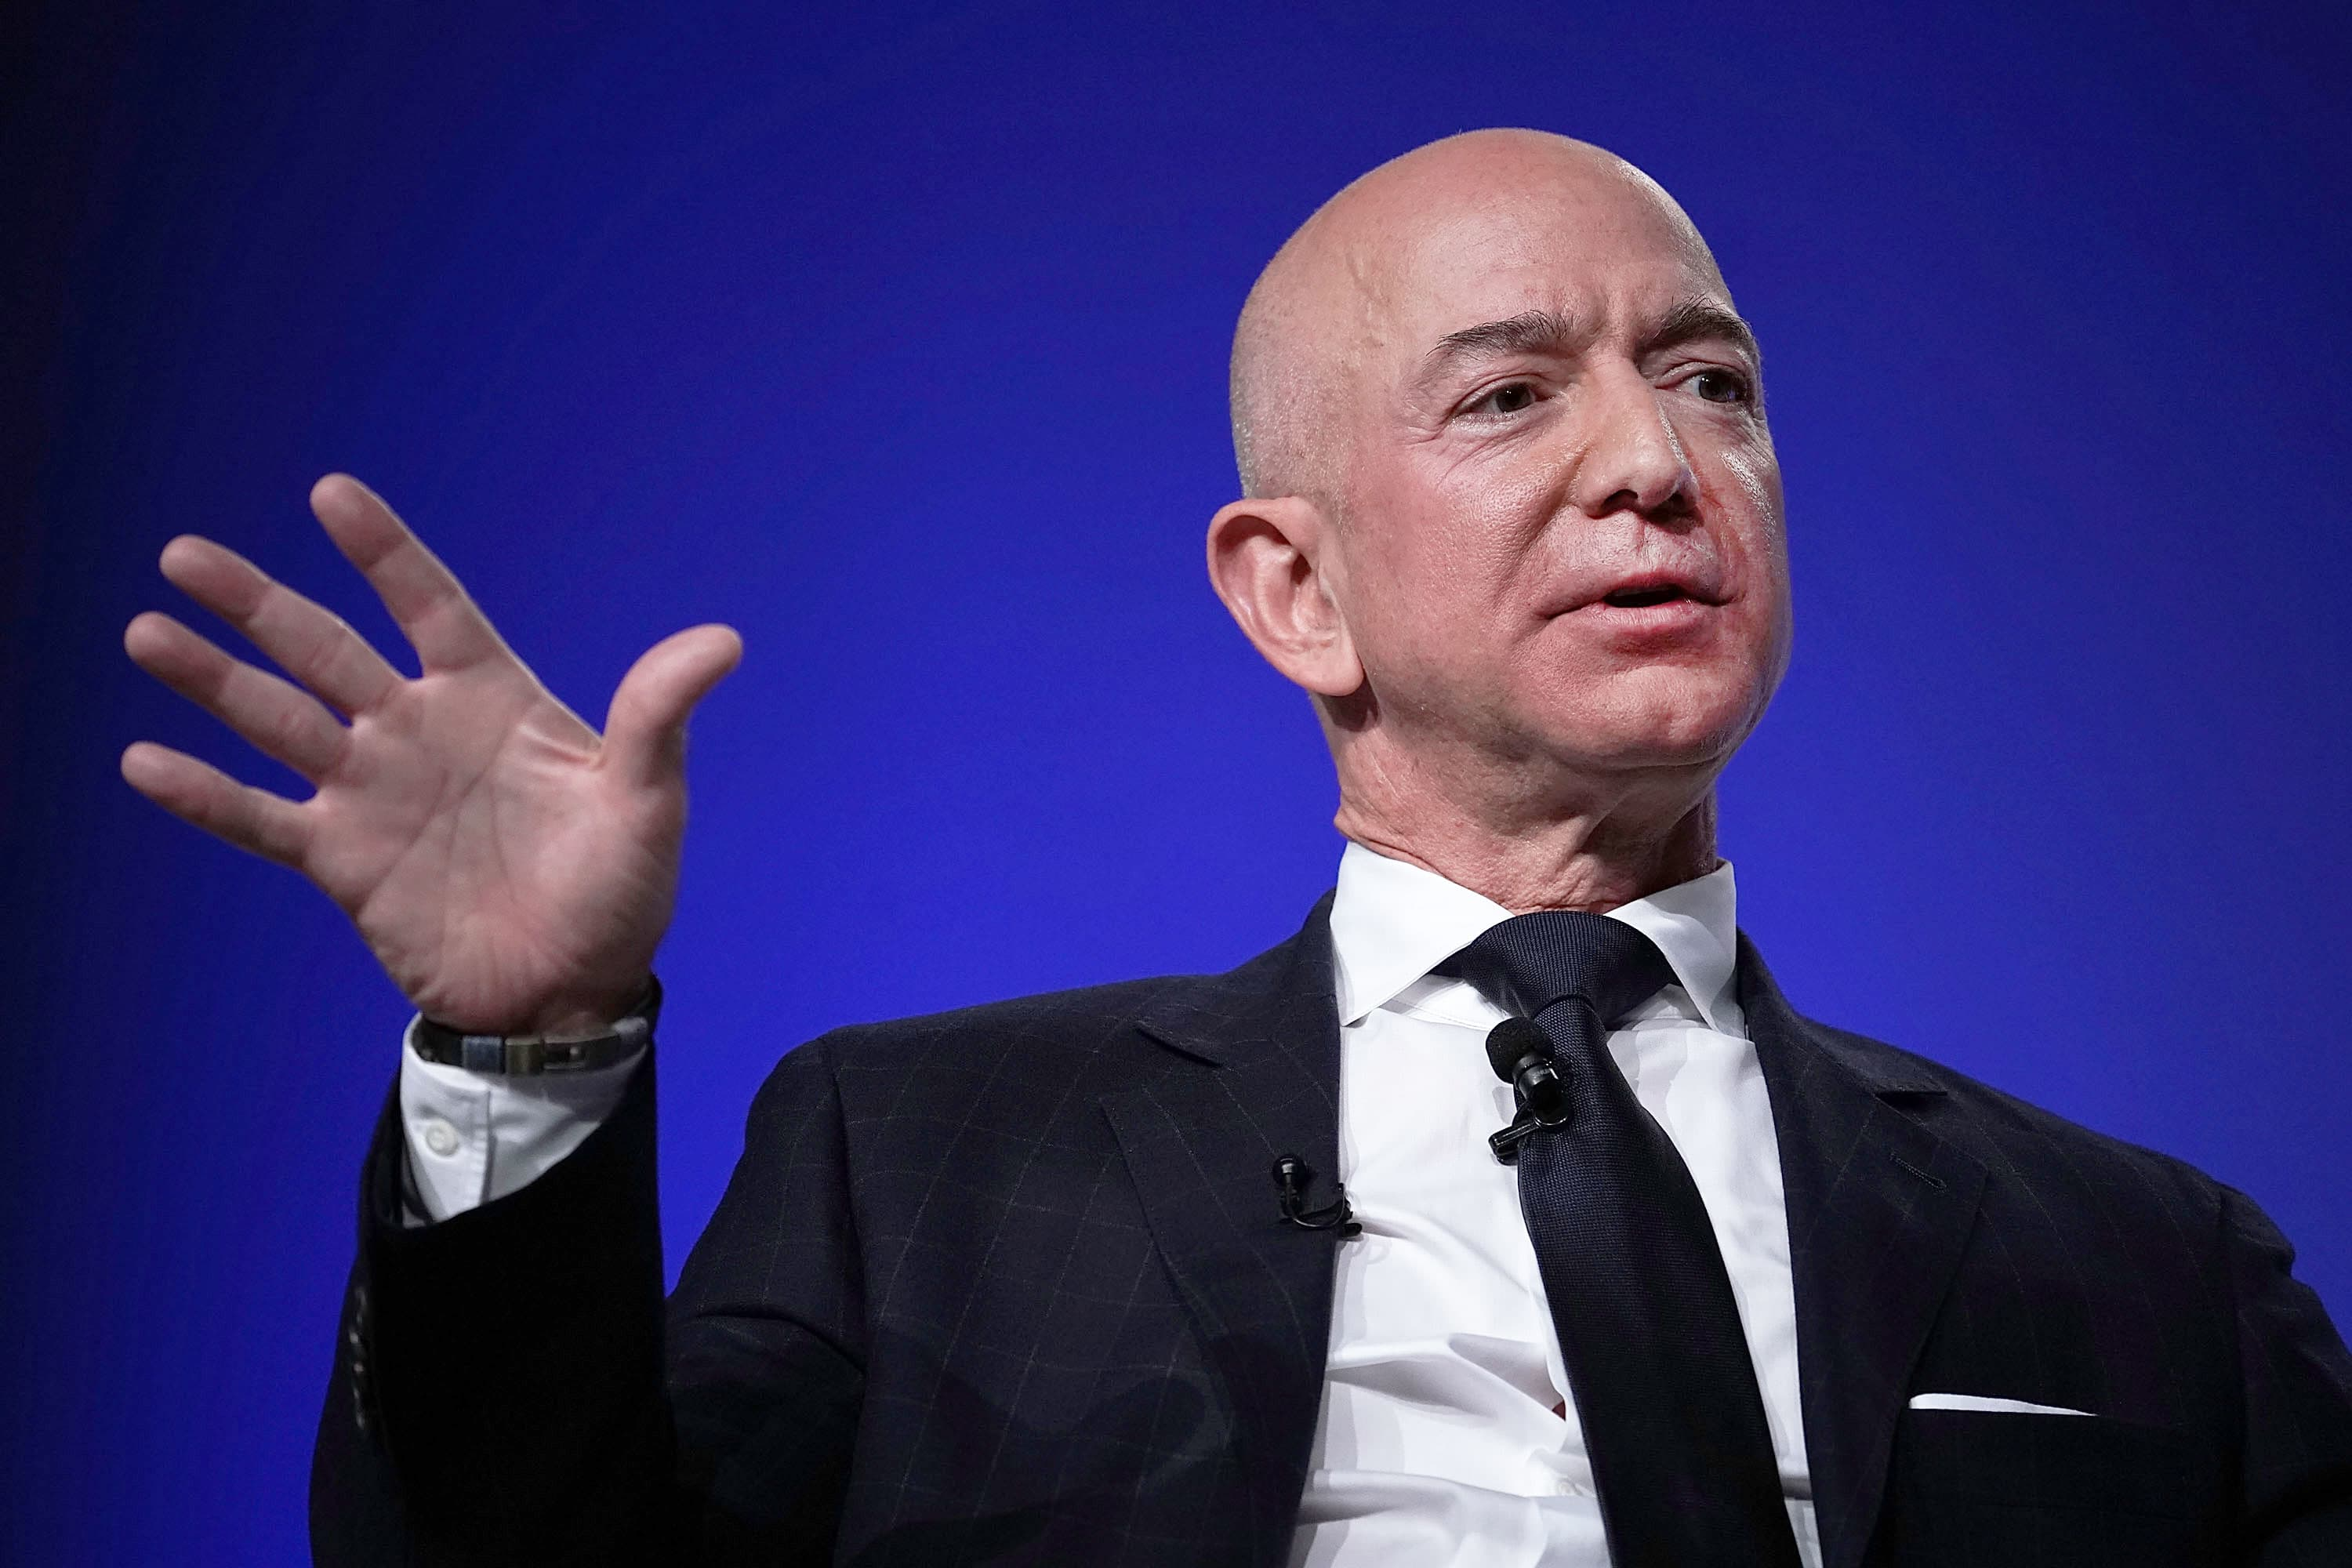 The charts show Amazon's stock is bottoming, primed for a 20% gain, Jim Cramer says